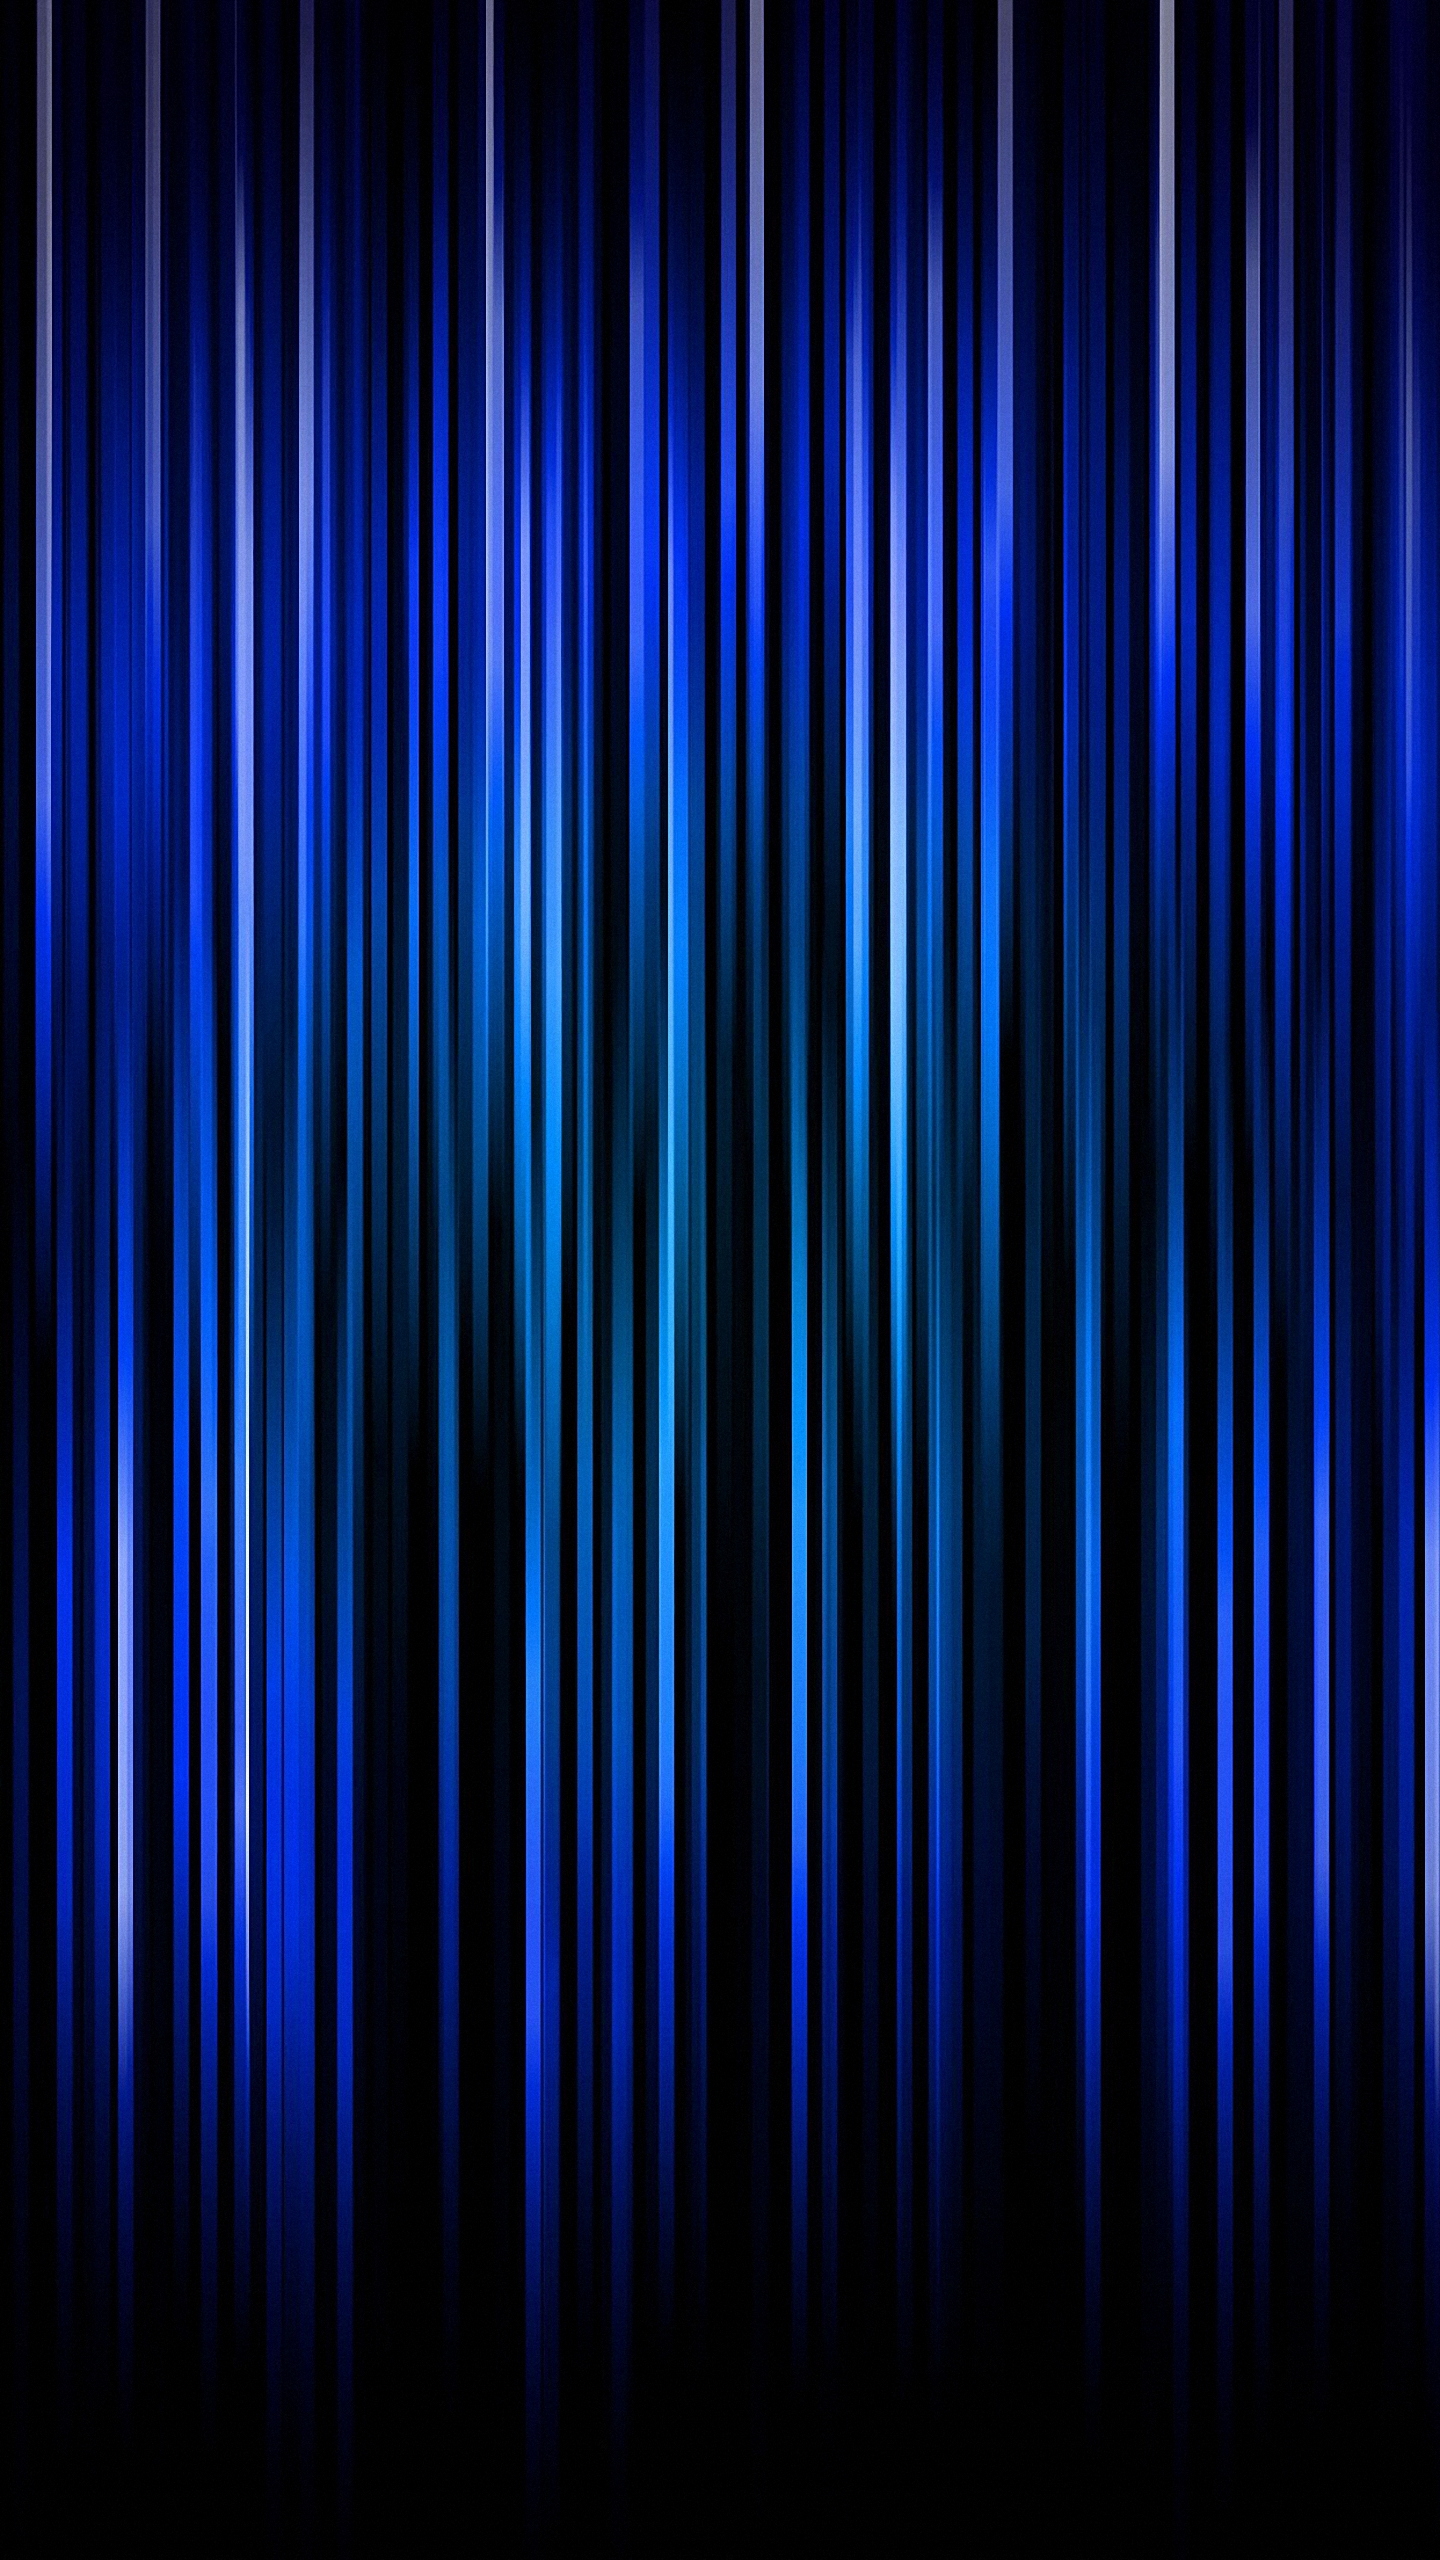 1440x2560 blue vertical lines nubia phone wallpapers mobile background 1440x2560